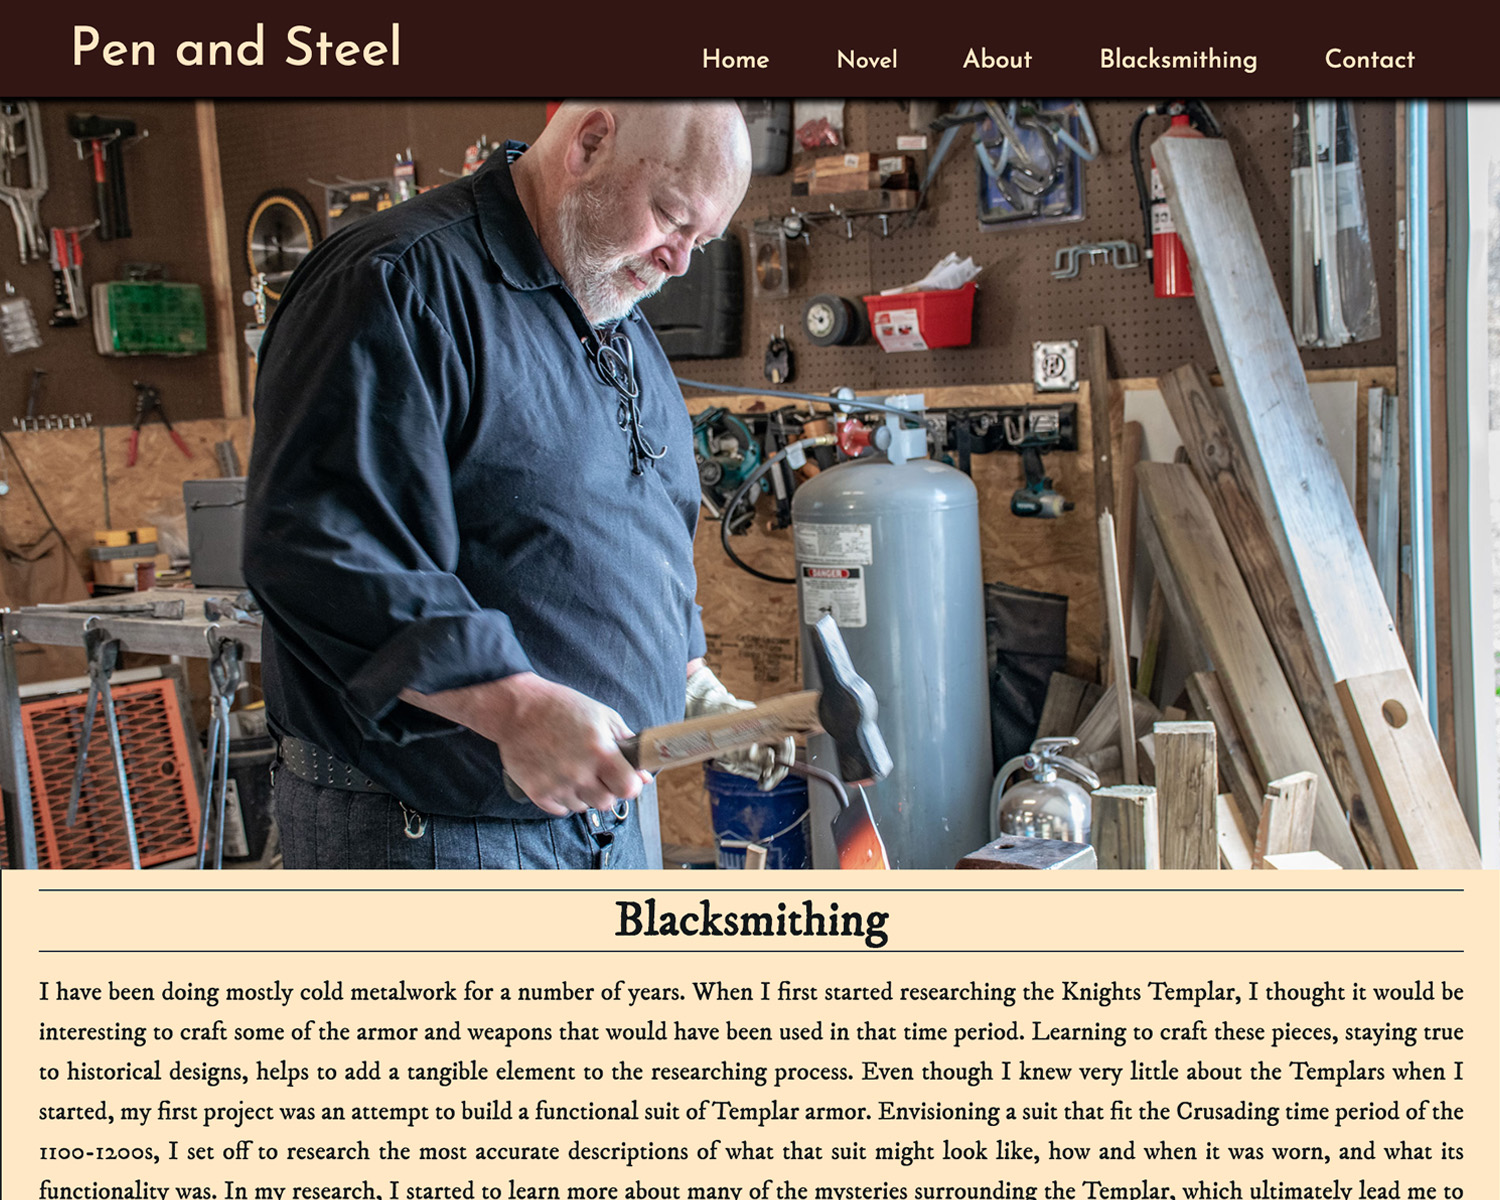 Pen and Steel blacksmith page screenshot